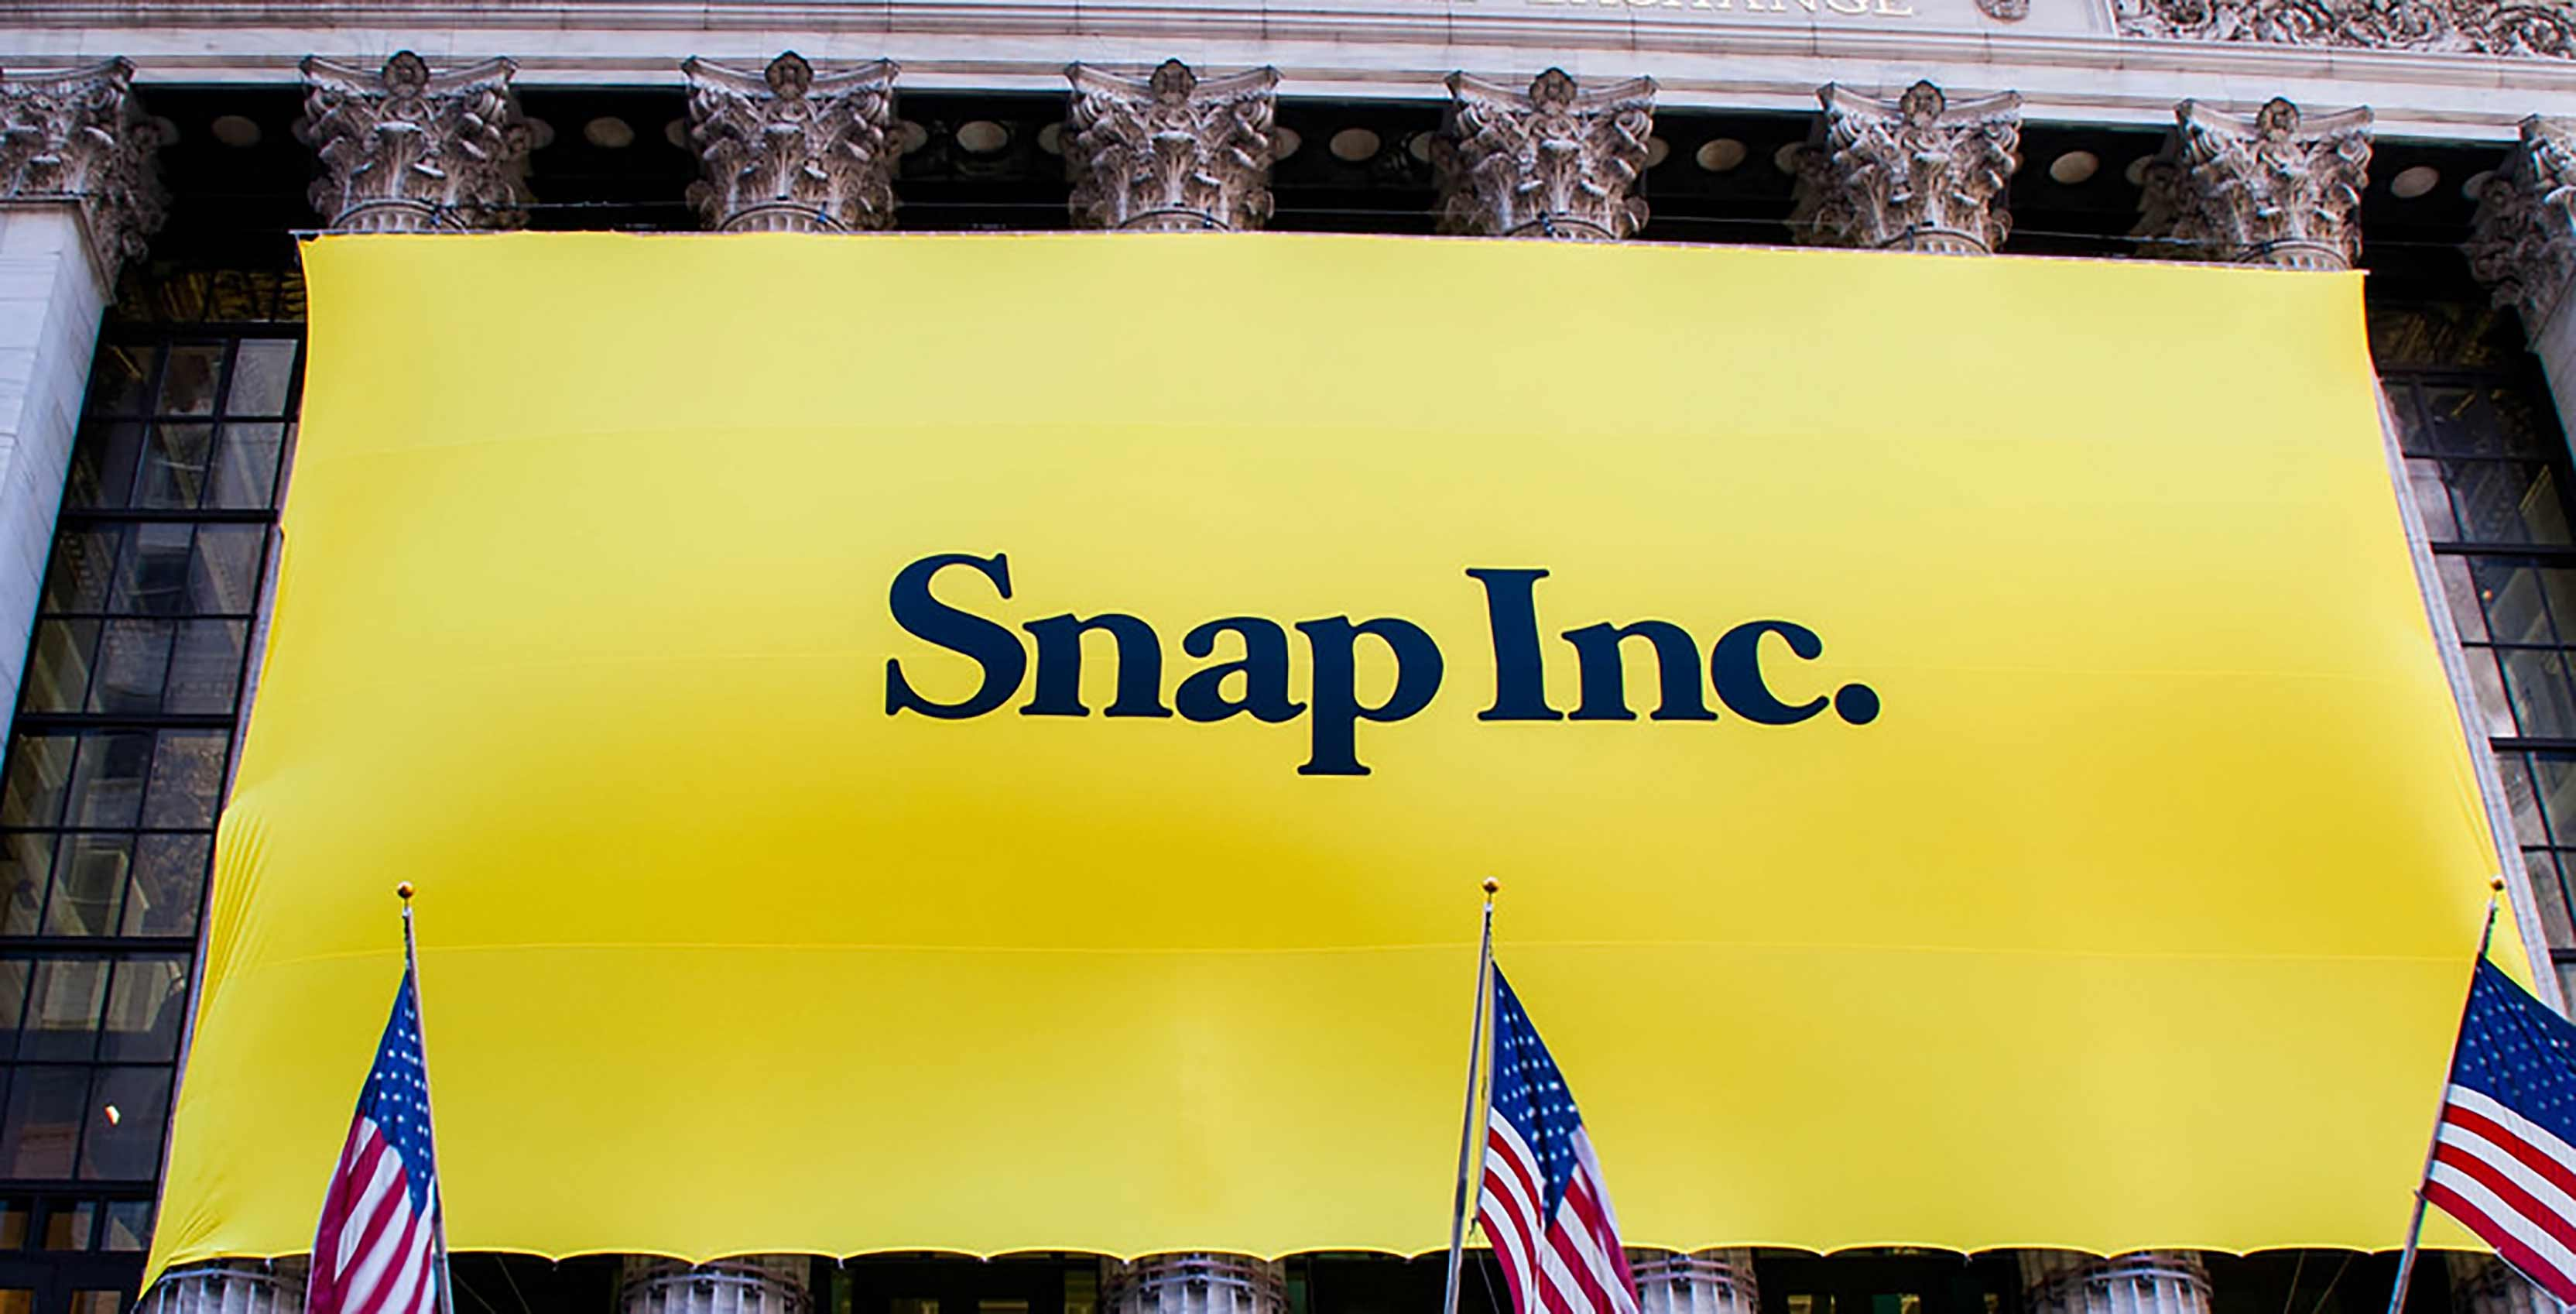 Snap Inc. banner